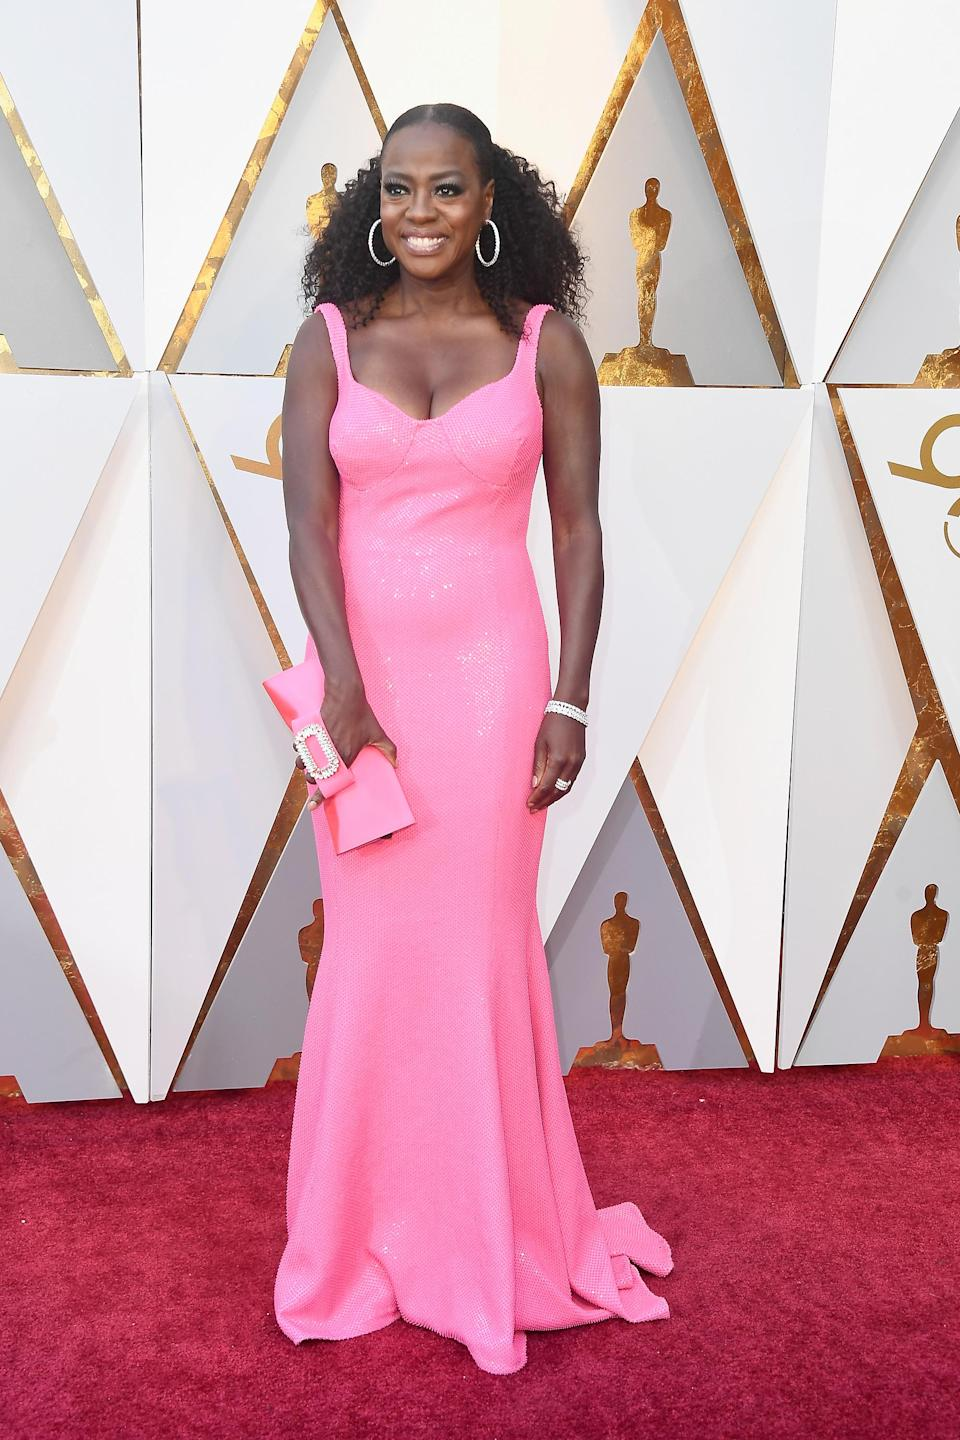 For the 90th Annual Academy Awards in 2018, 'How To Get Away With Murder' star David wowed in a hot pink gown by American designer Michael Kors.